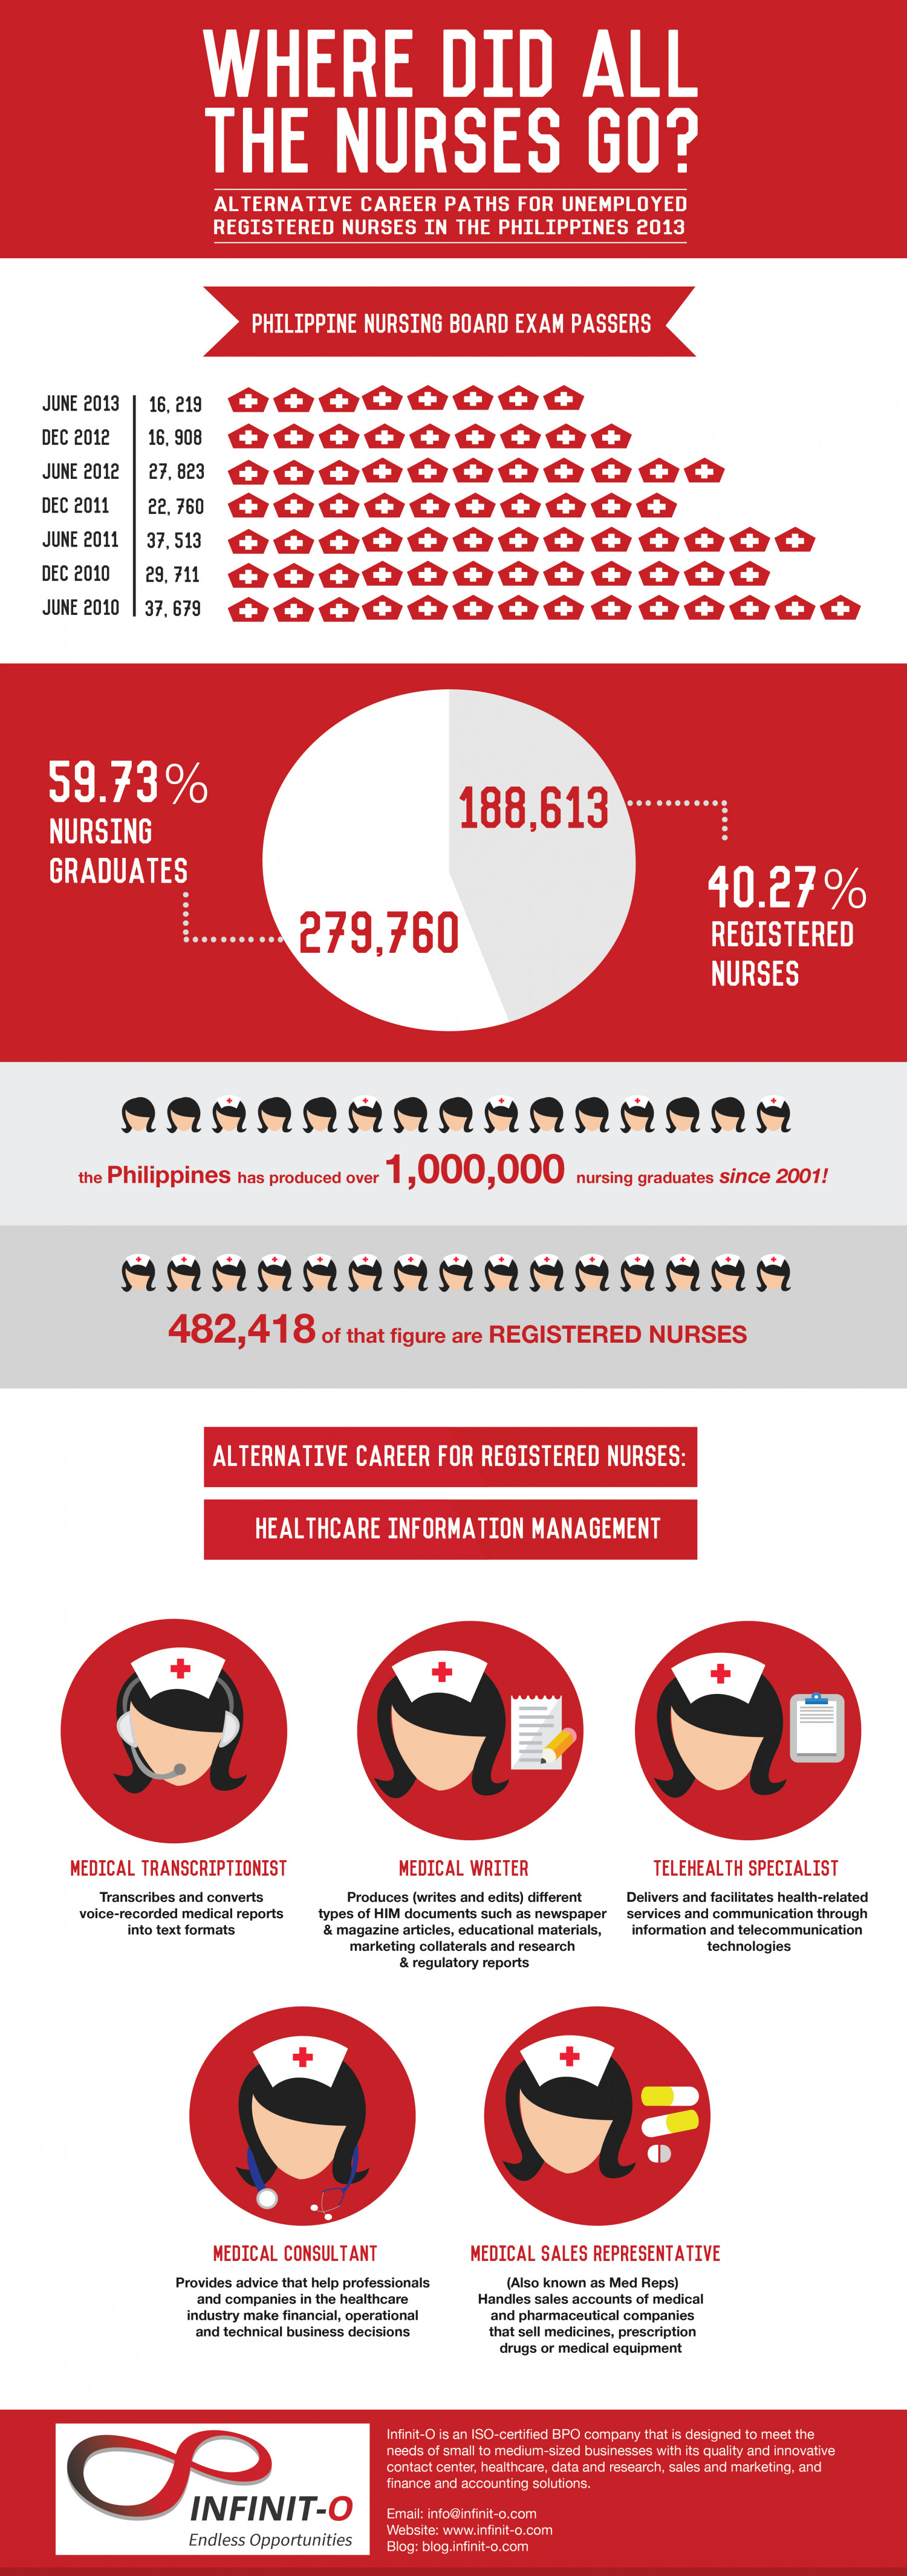 Alternative Career Paths for Unemployed Nurses in the Philippines 2013  Infographic